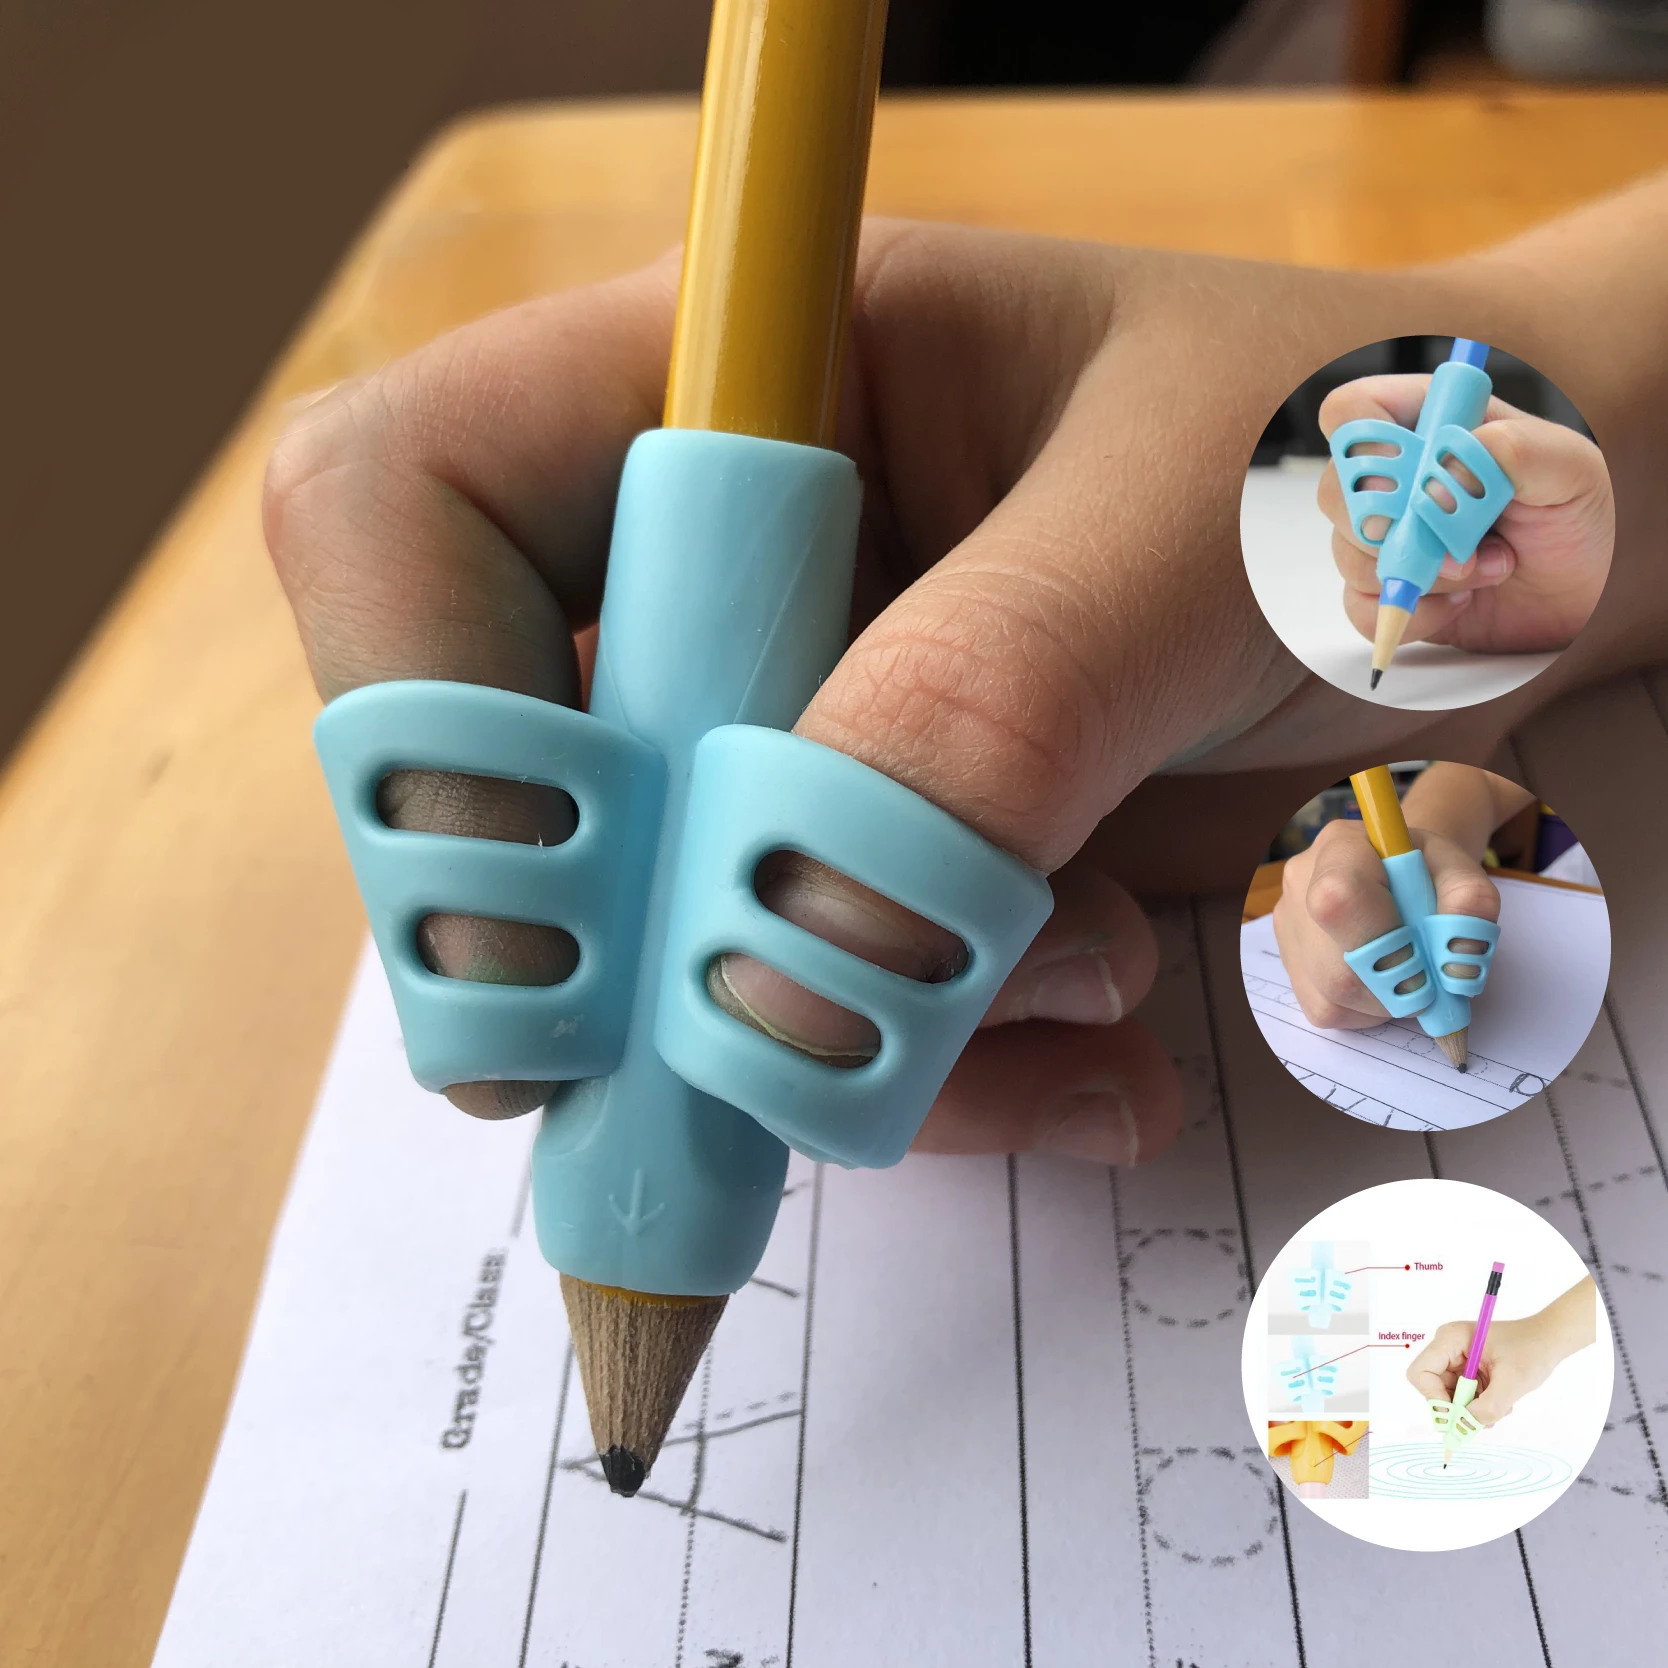 (CHRISTMAS PRE SALE - SAVE 50% OFF) Ergonomic Training Pencil Grip (3pack) - Two Fingers